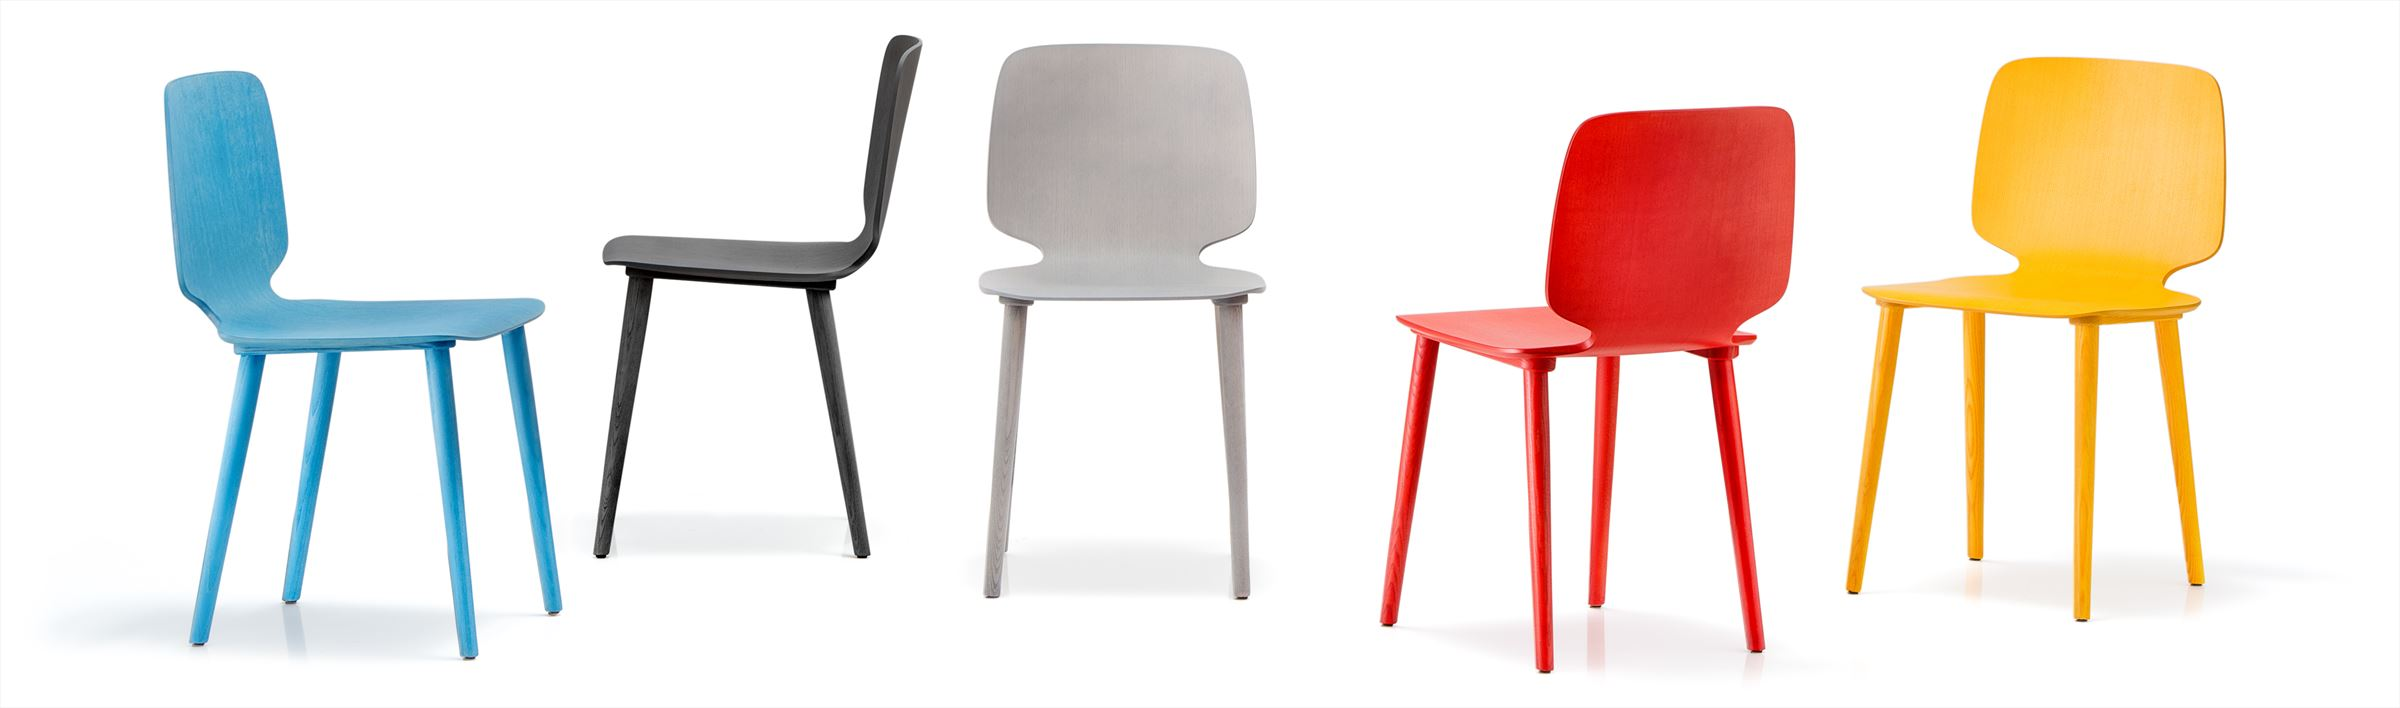 FP Collection stoelen